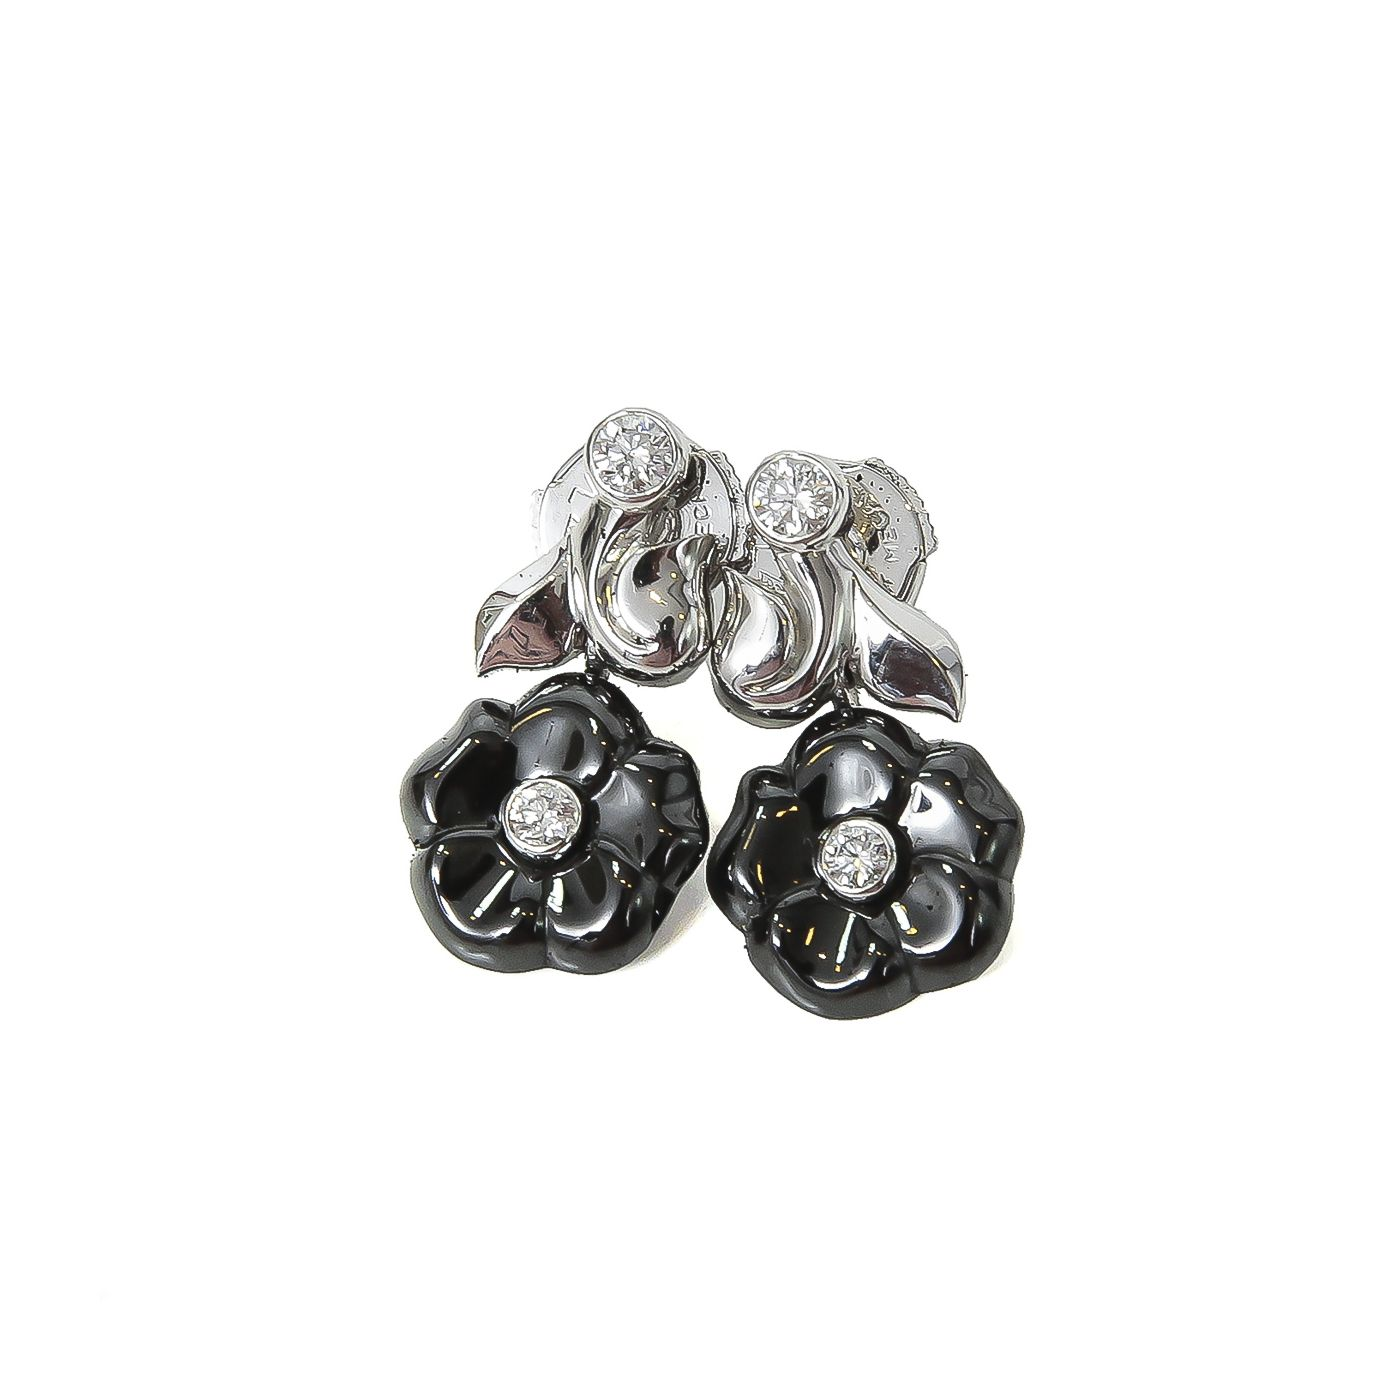 Chanel Galbe in Black Ceramic / 18k White Gold & Diamonds Camelia Earrings